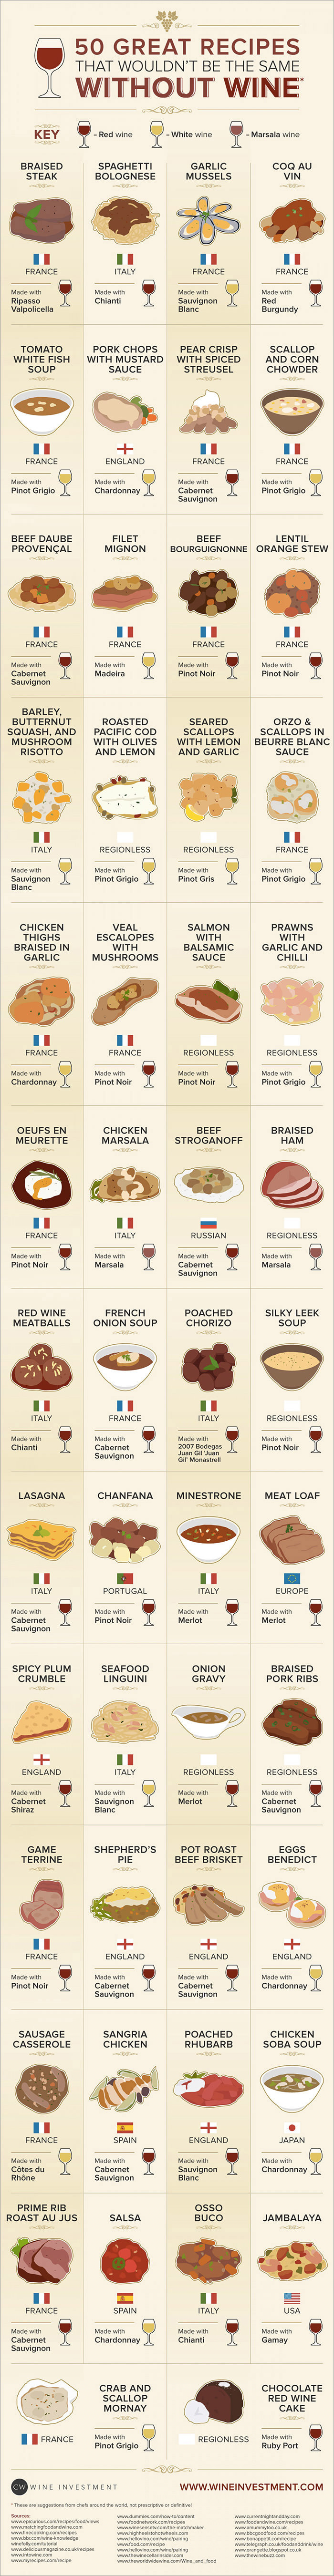 wine-recipes